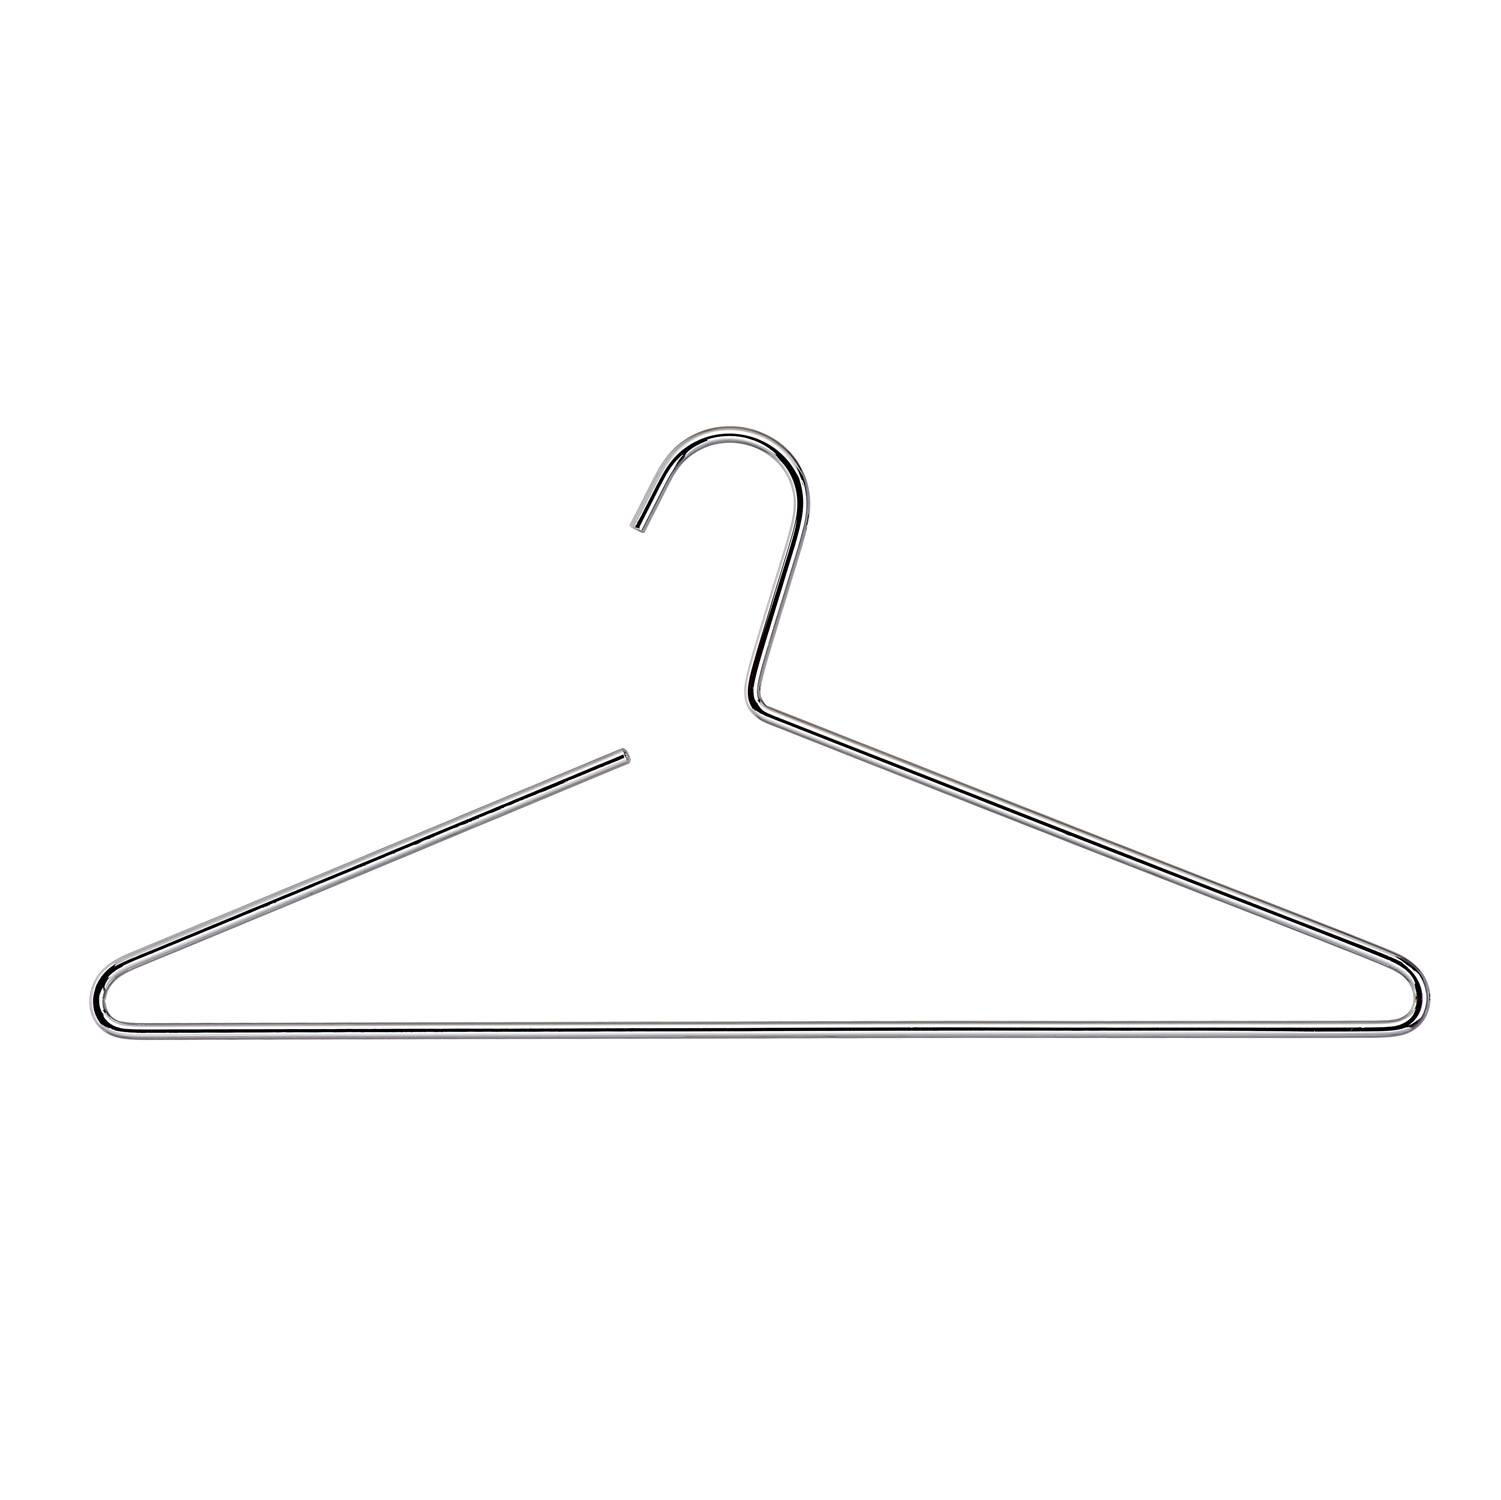 5.0mm chrome color wire hangers of Metal material